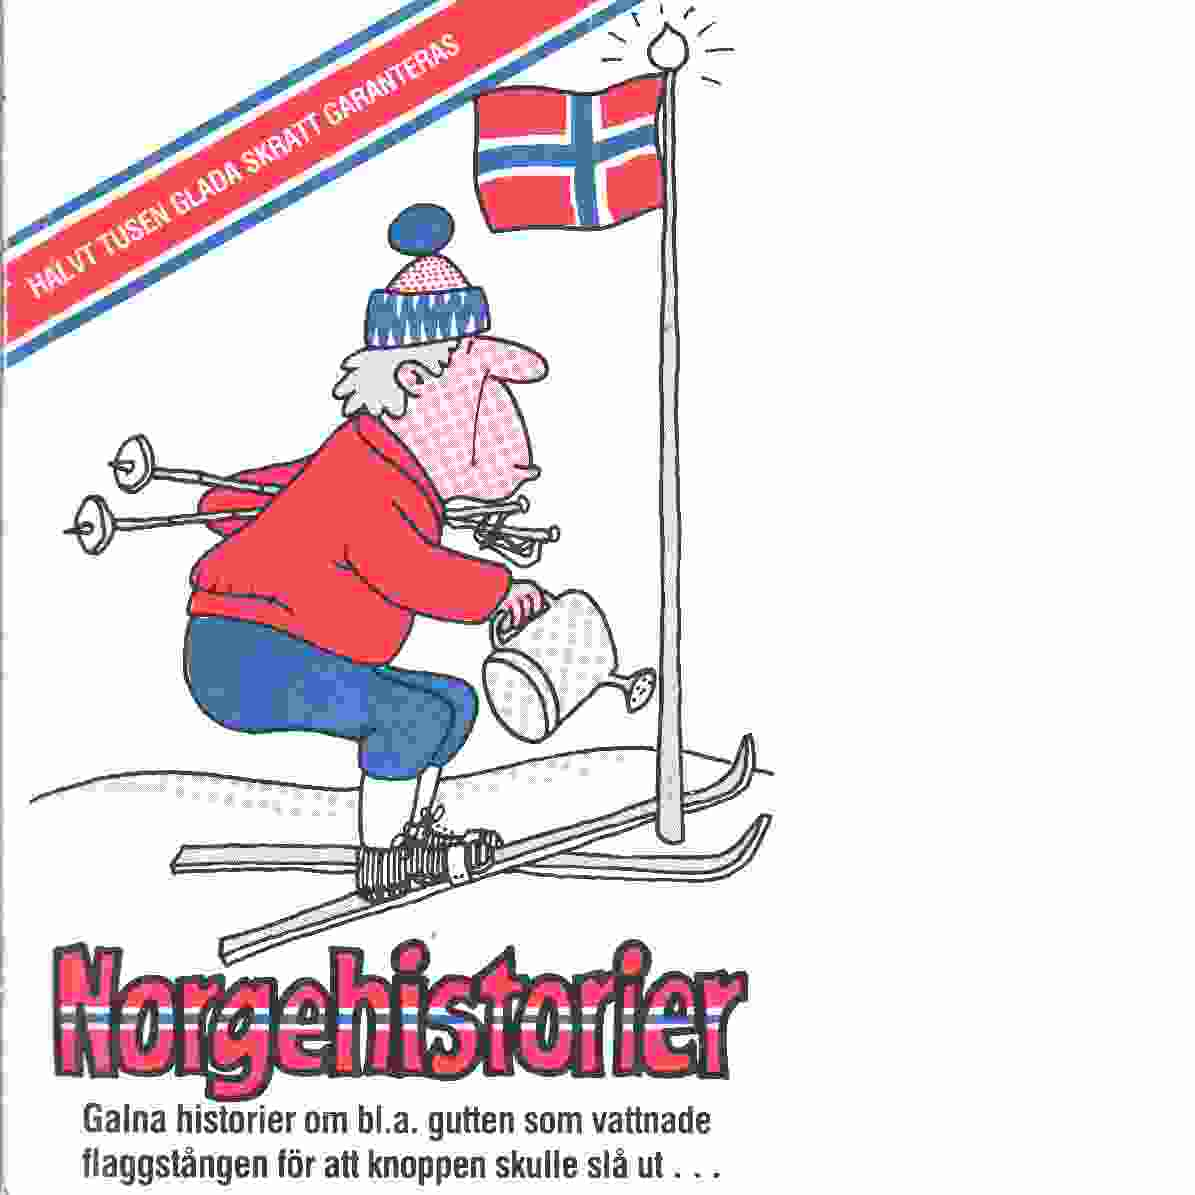 Norgehistorier - Red. Persson, Reid